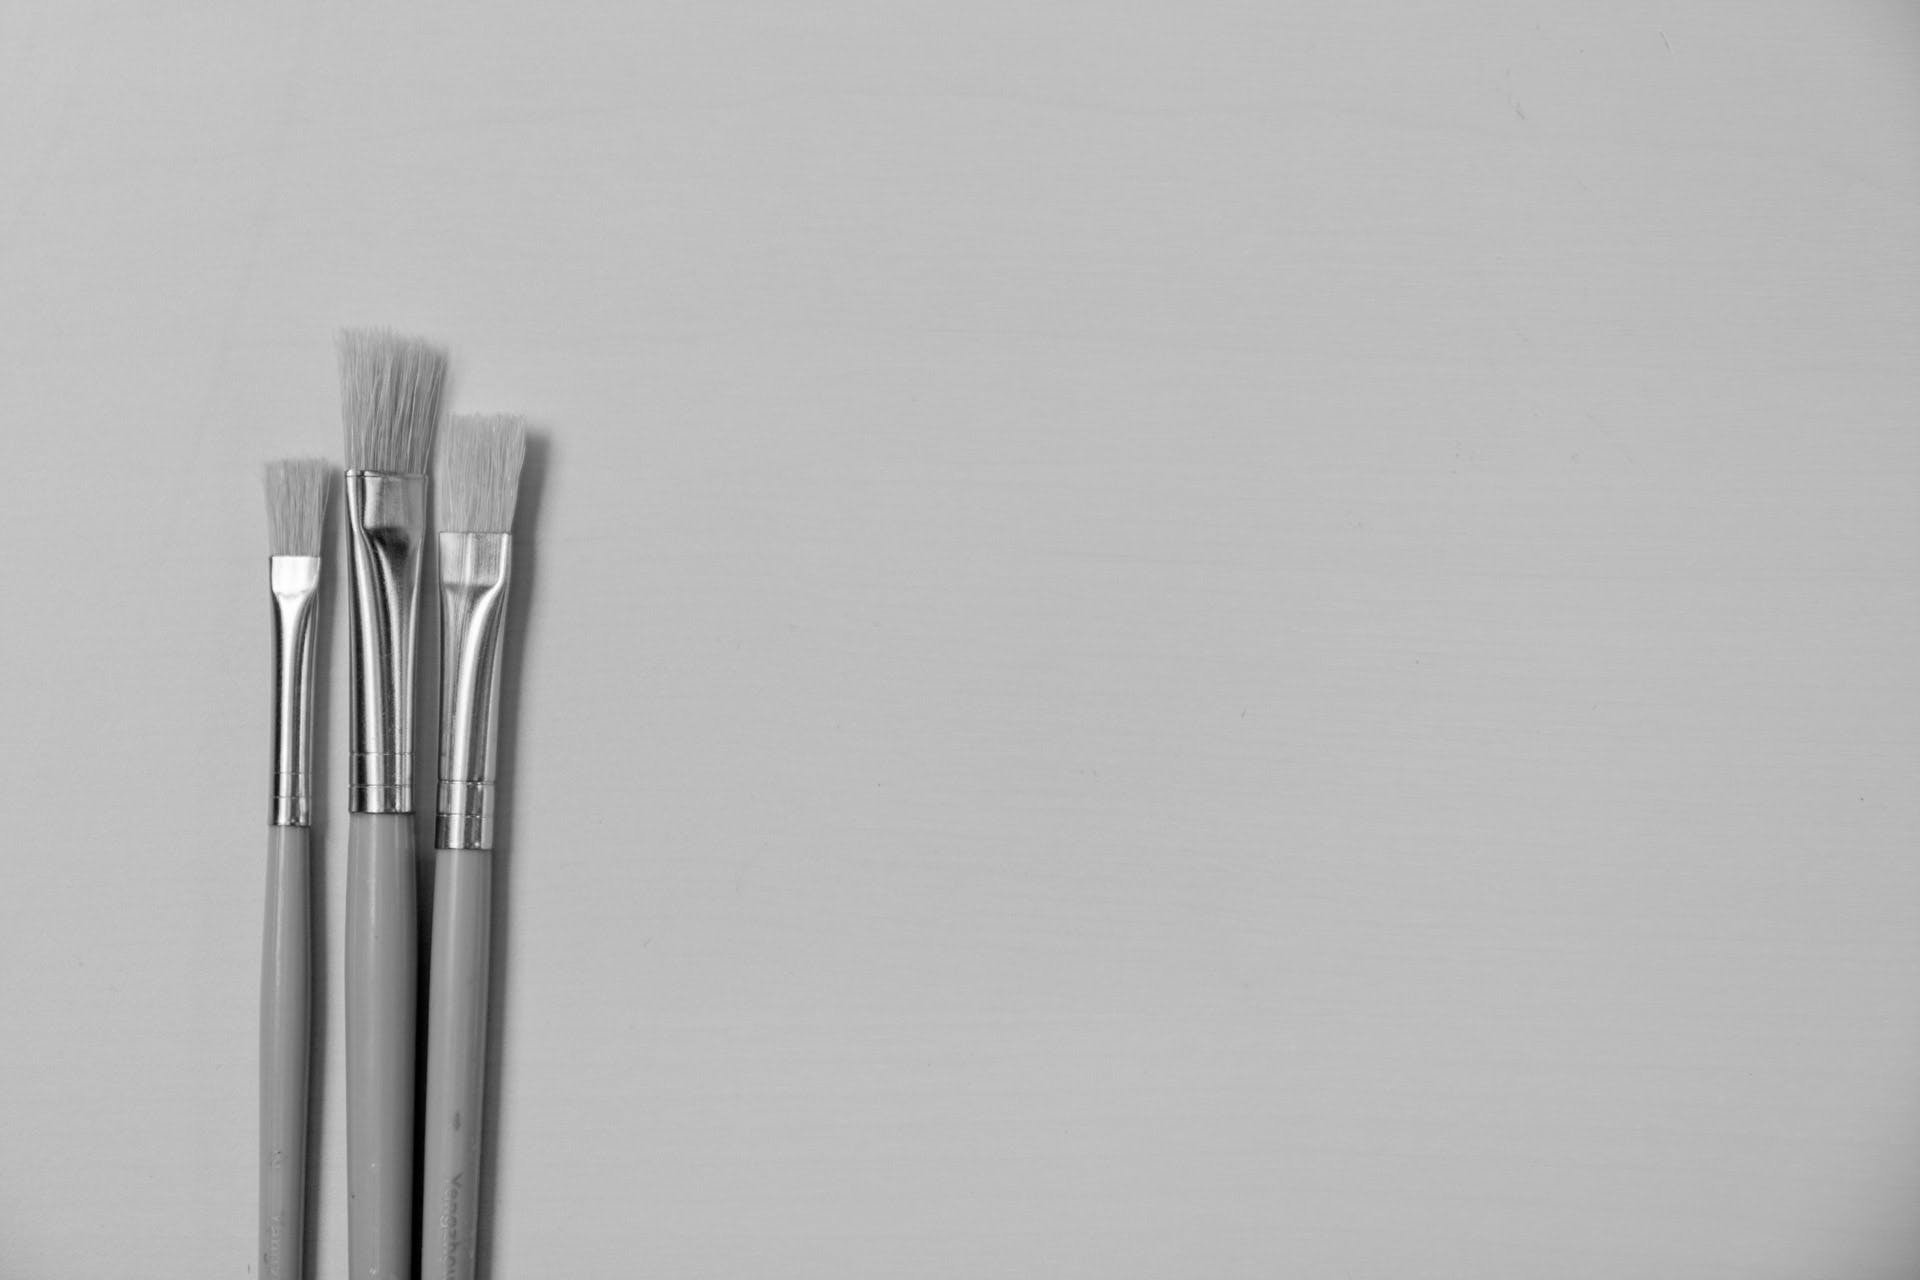 Free stock photo of black and white, designer, paint, paint brush